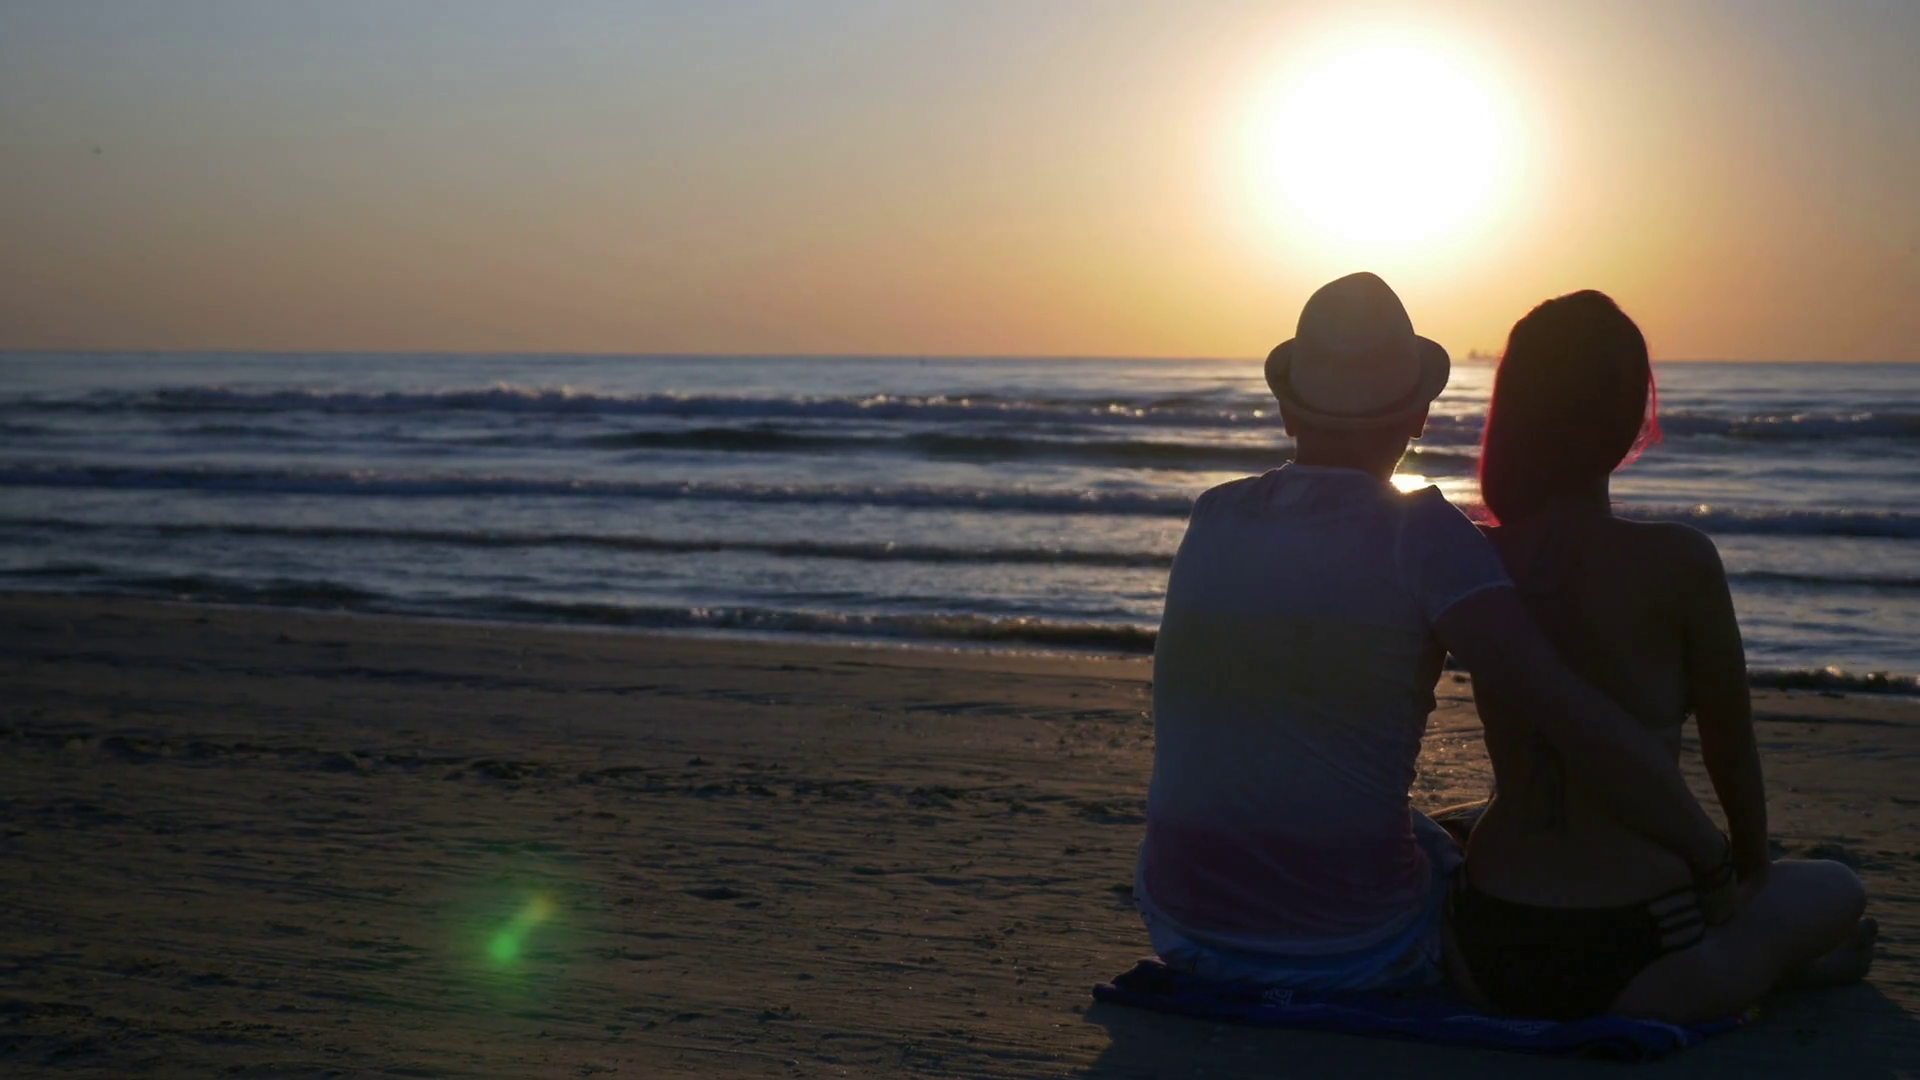 romantic-couple-sitting-on-the-beach-hugging-and-kissing-at-sunrise_s8x5sg7ue_thumbnail-full01.png